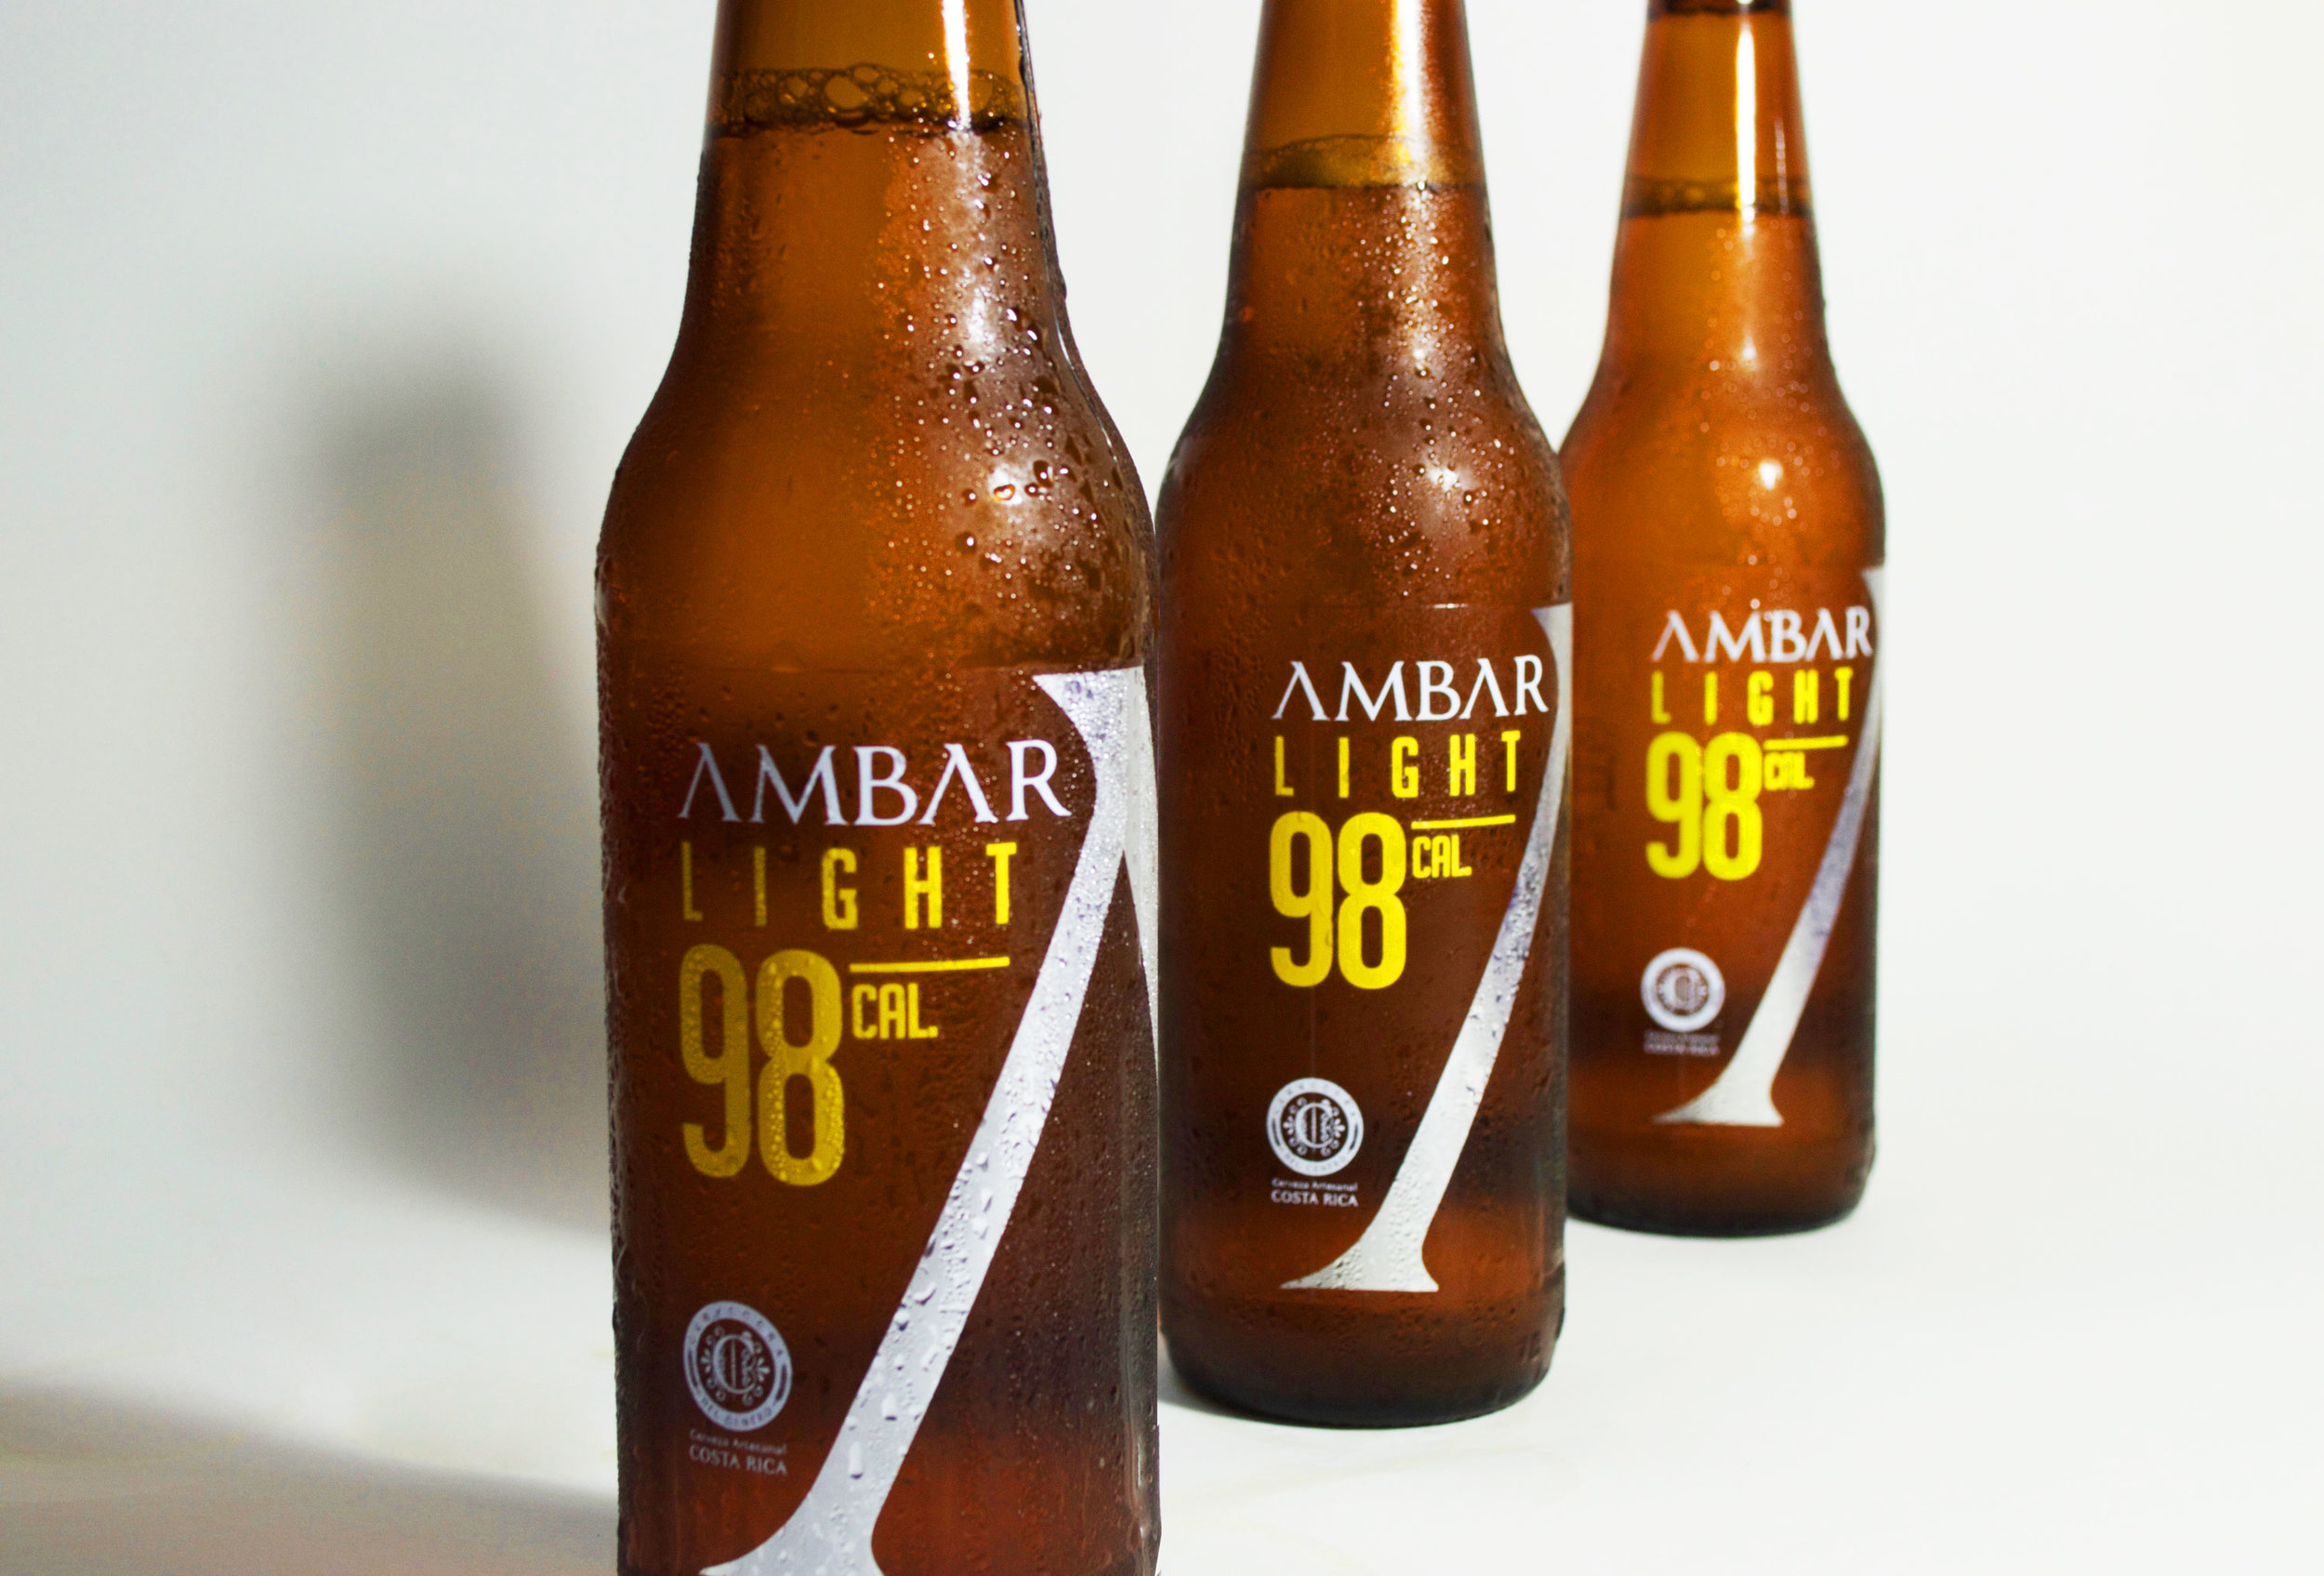 Leo Burnett - Ambar Light 983.jpg